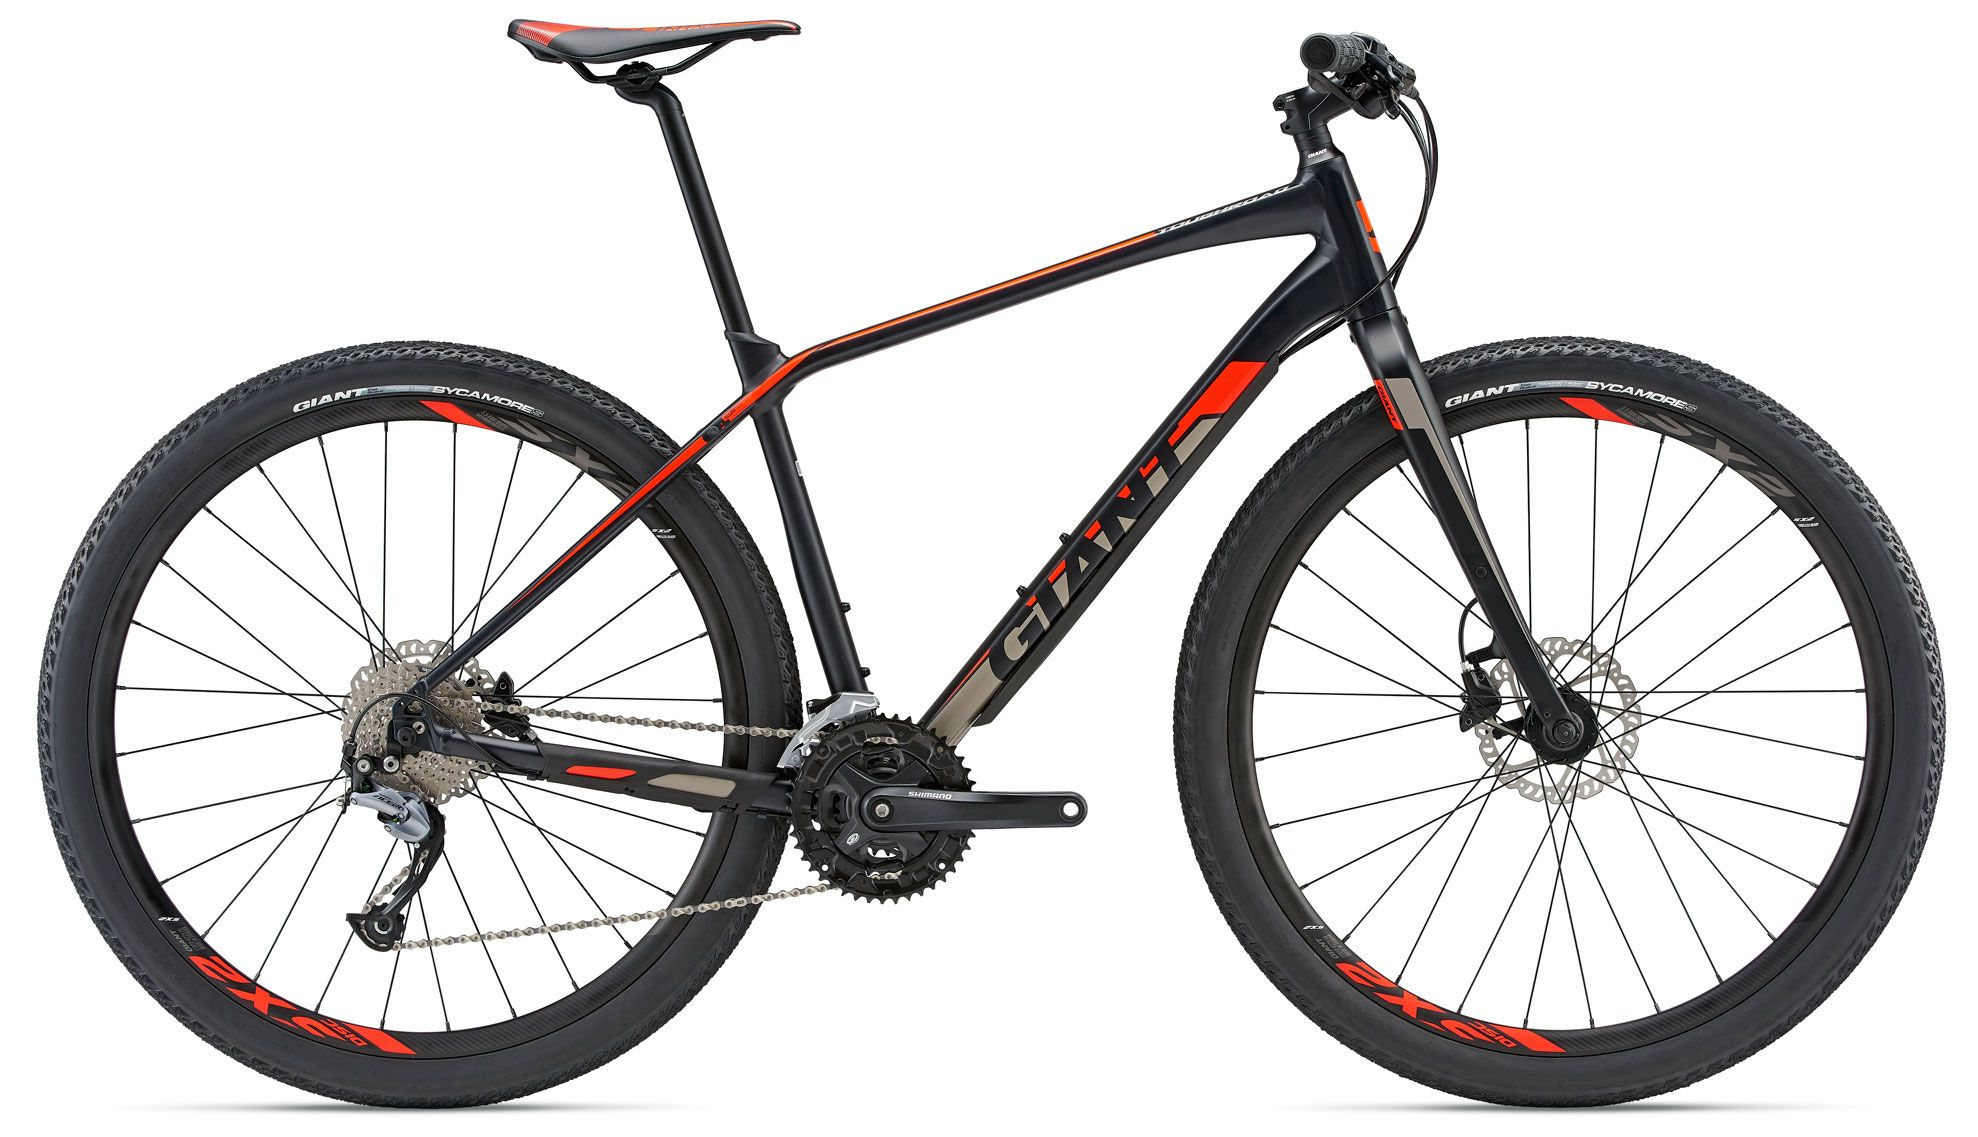 Велосипед Giant ToughRoad SLR 2 2018 велосипед giant toughroad slr 1 2018